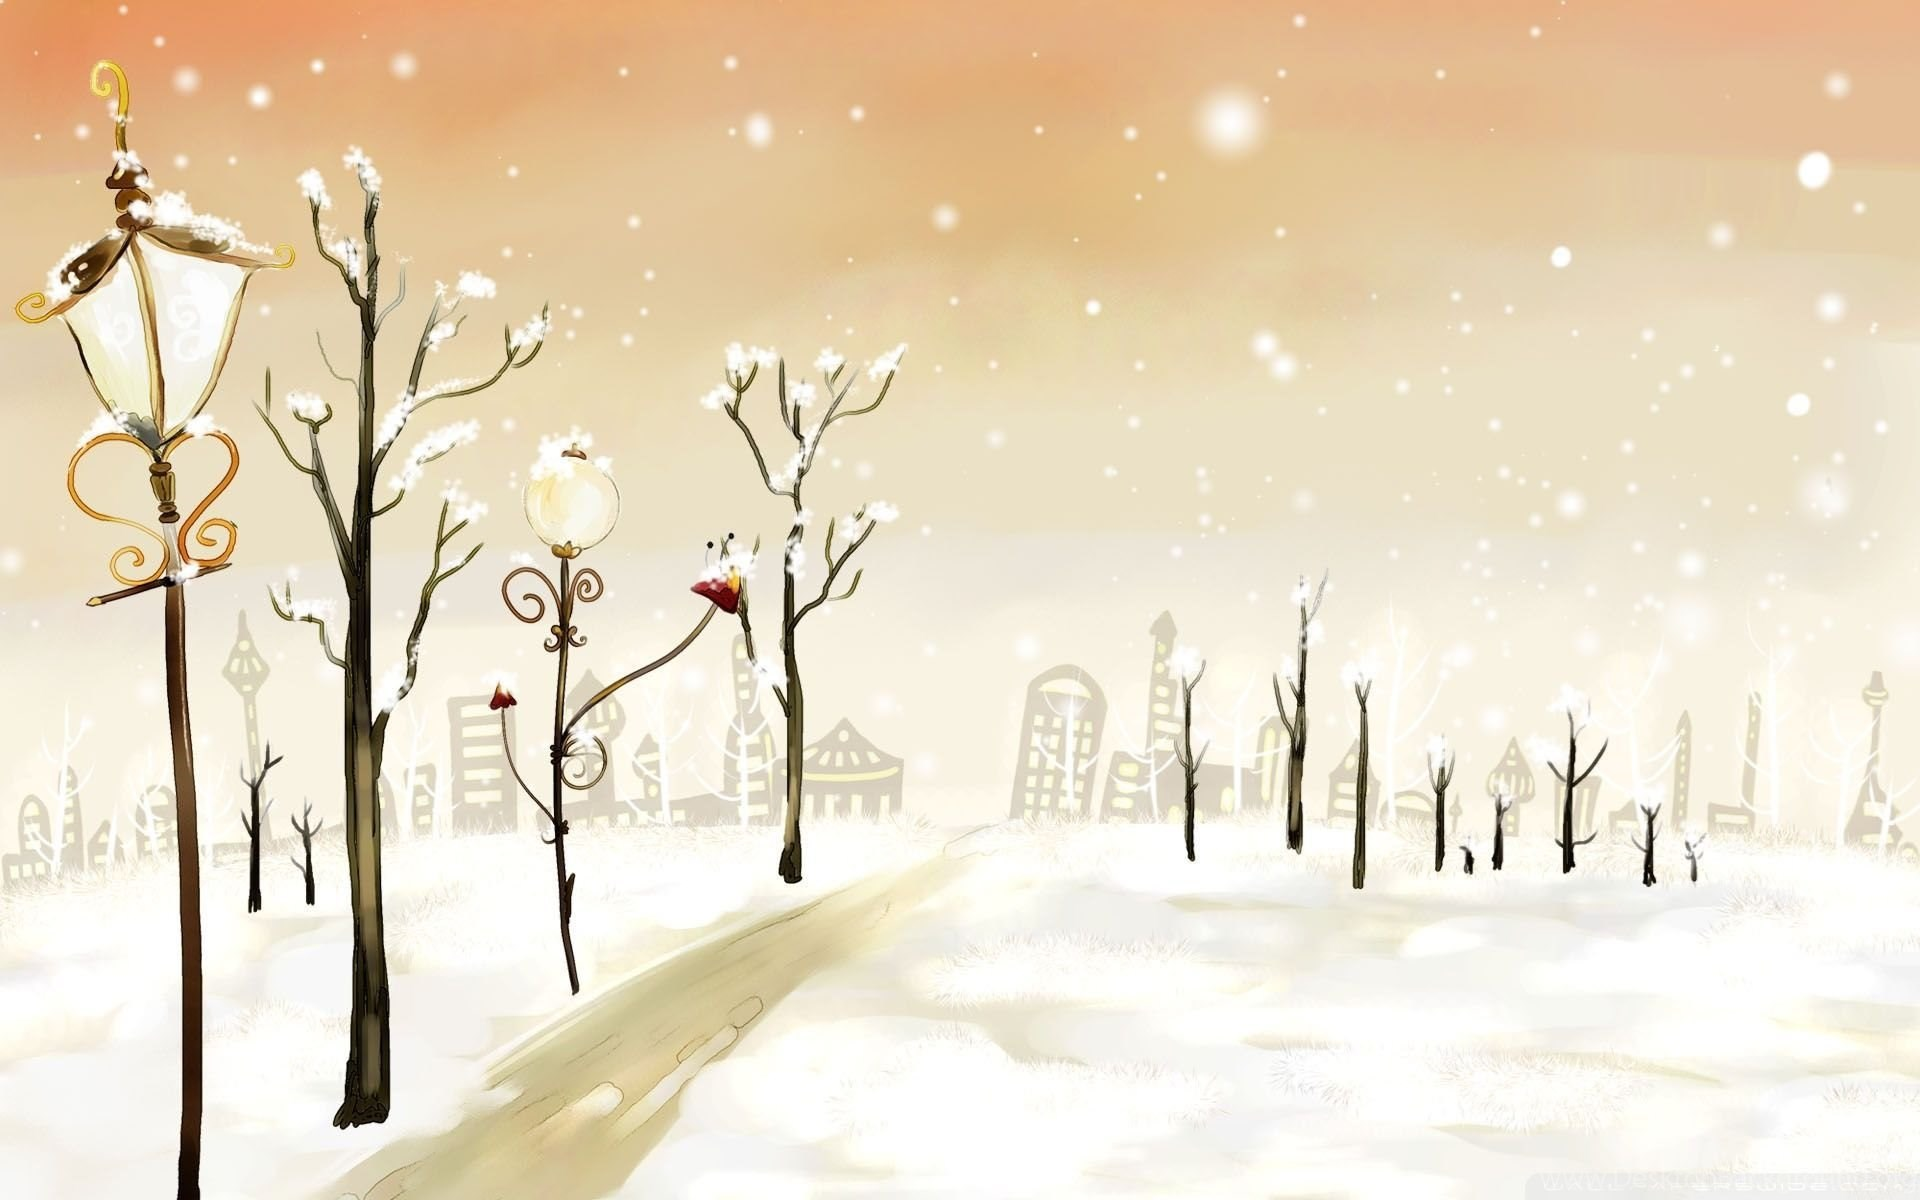 Winter Computer Wallpaper Cute Winter Backgrounds Desktop